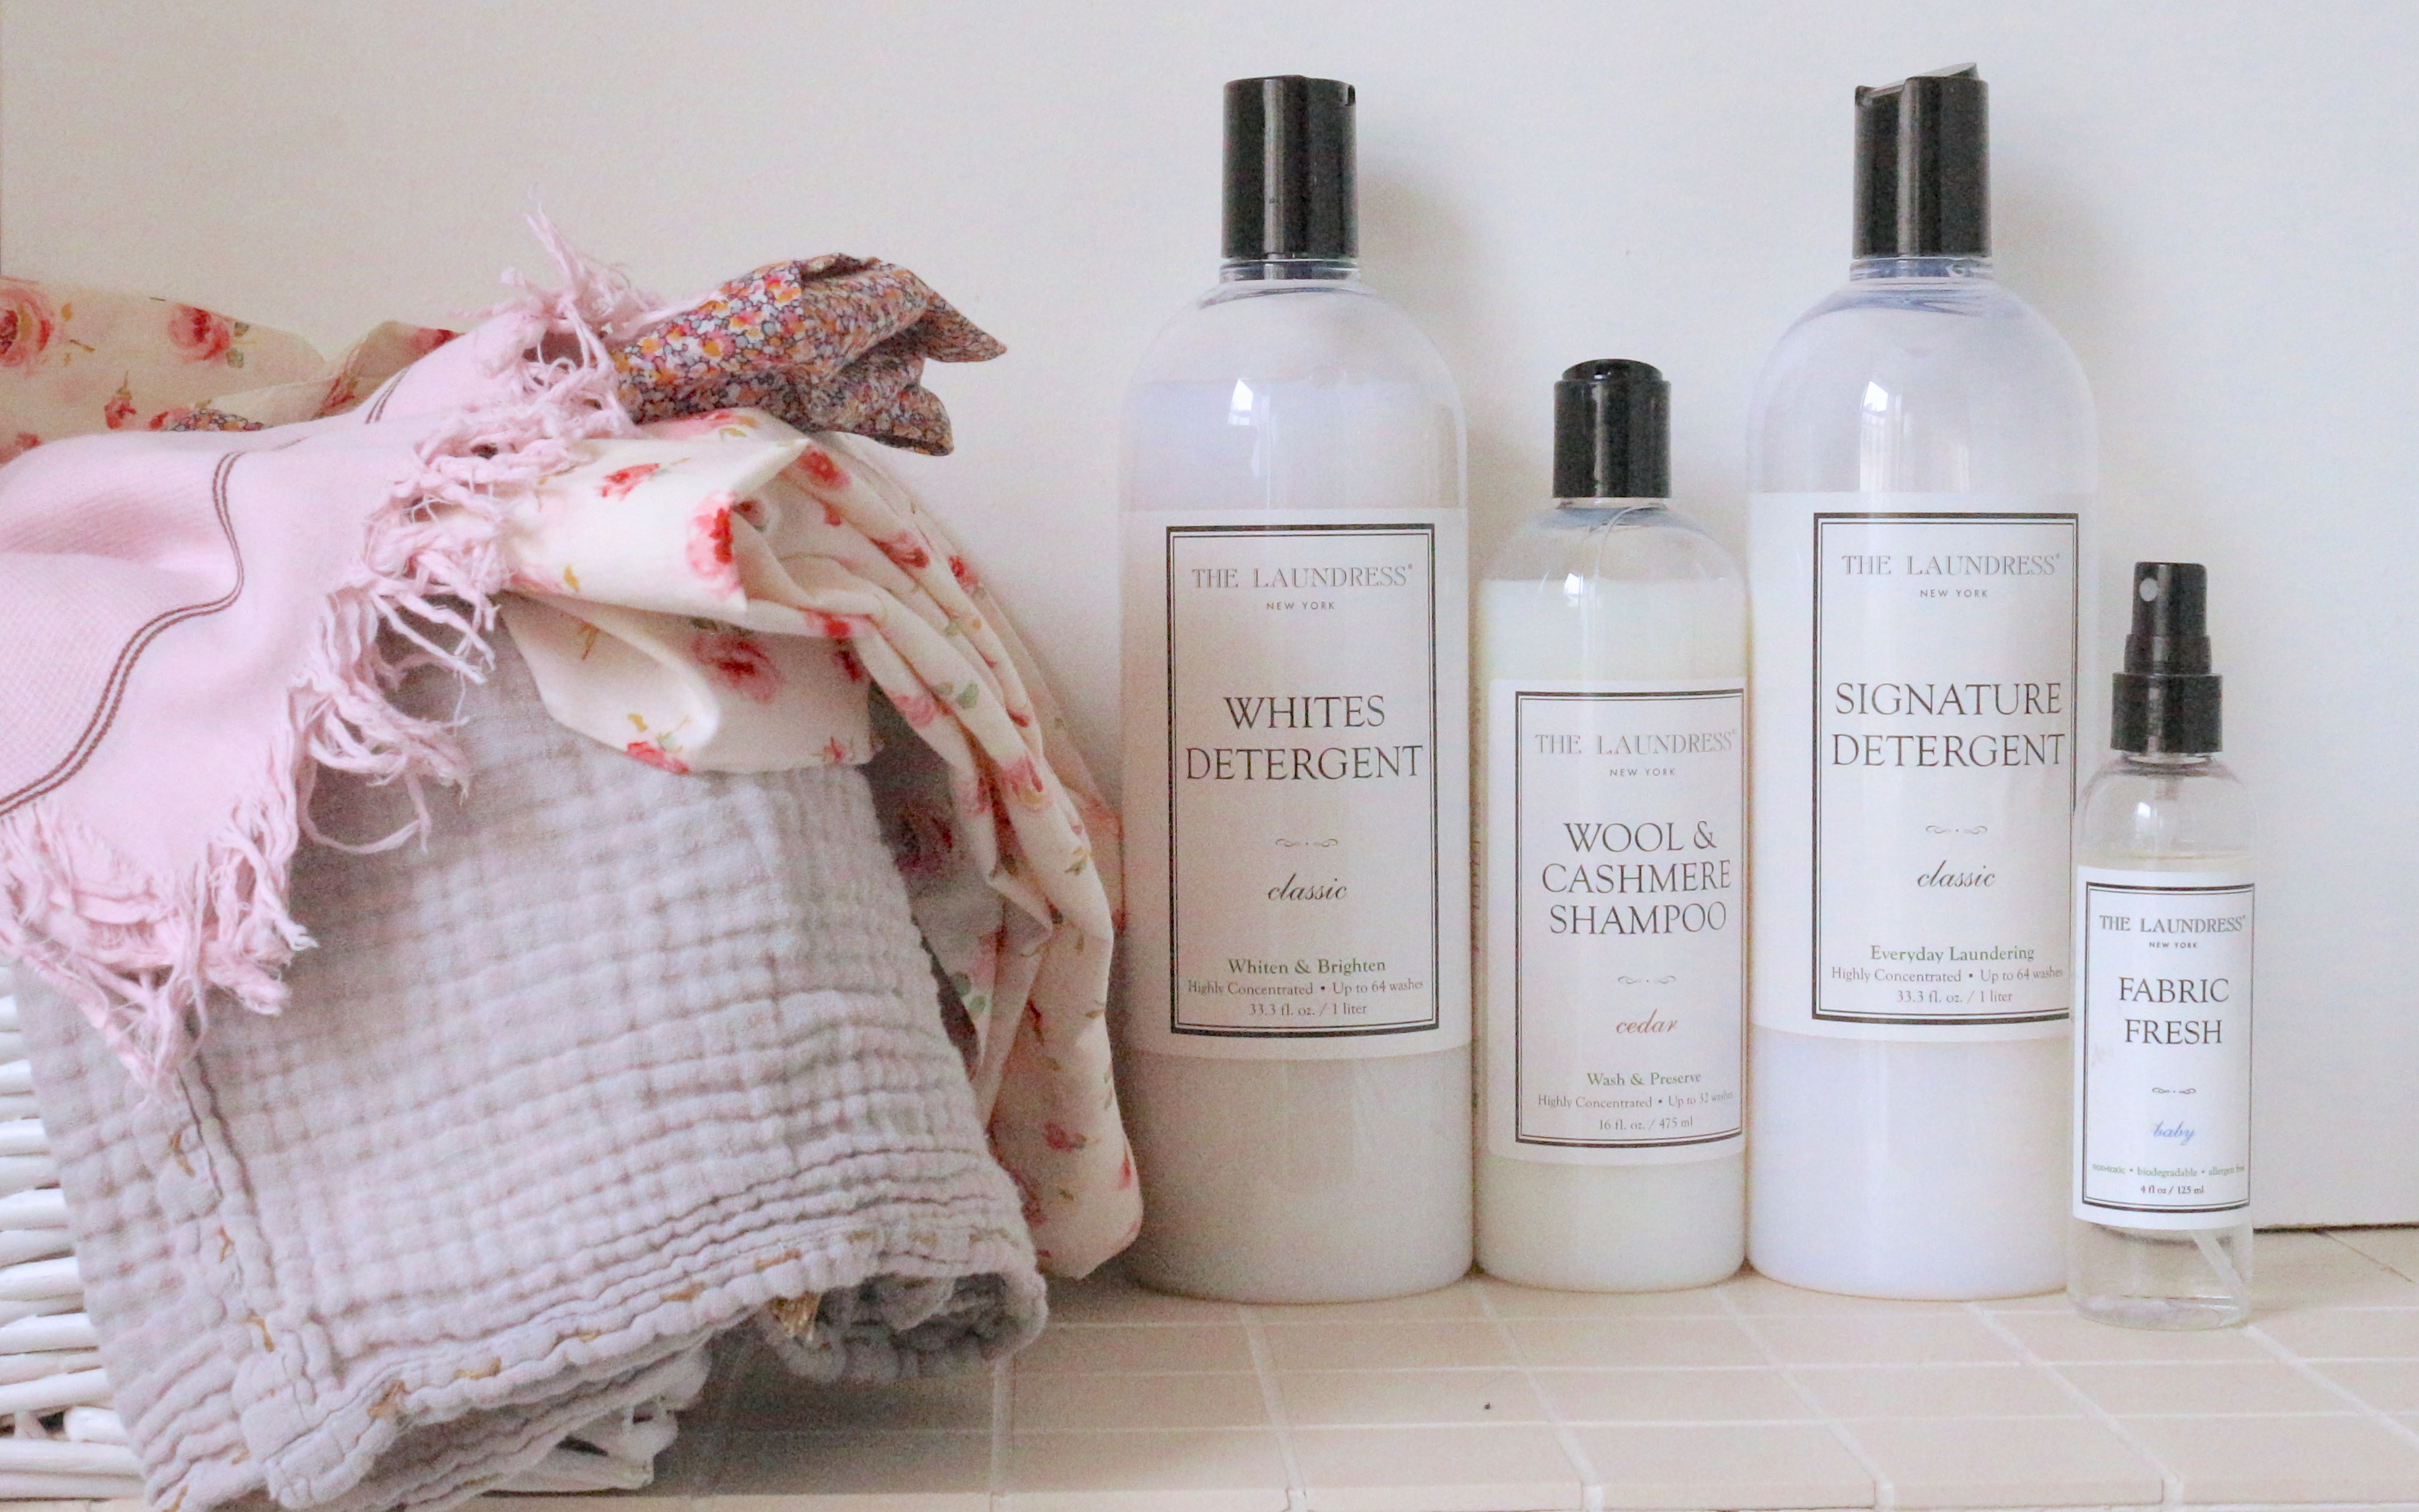 The Laundress, Sweet Cabane